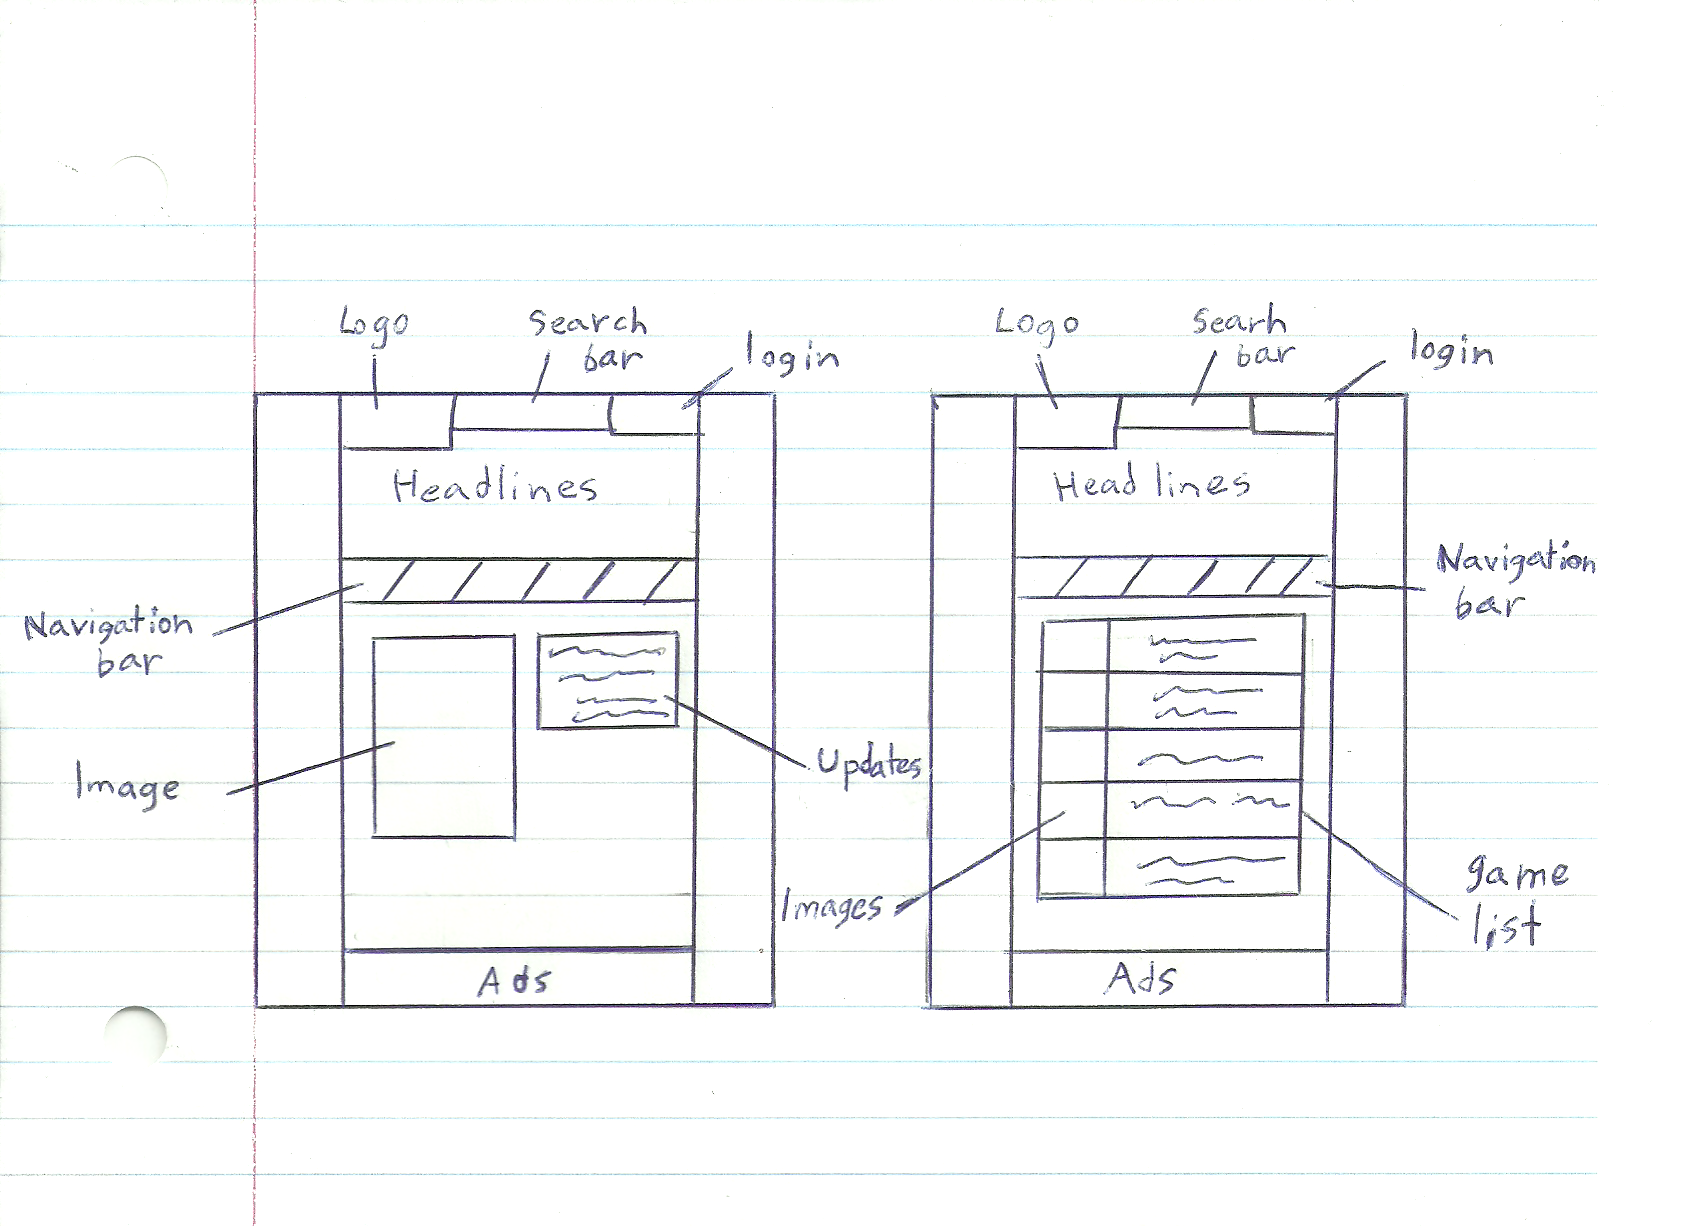 Project 1, Part 3: Website Redesign Site Map With Page Descriptions & Wireframe Sketches